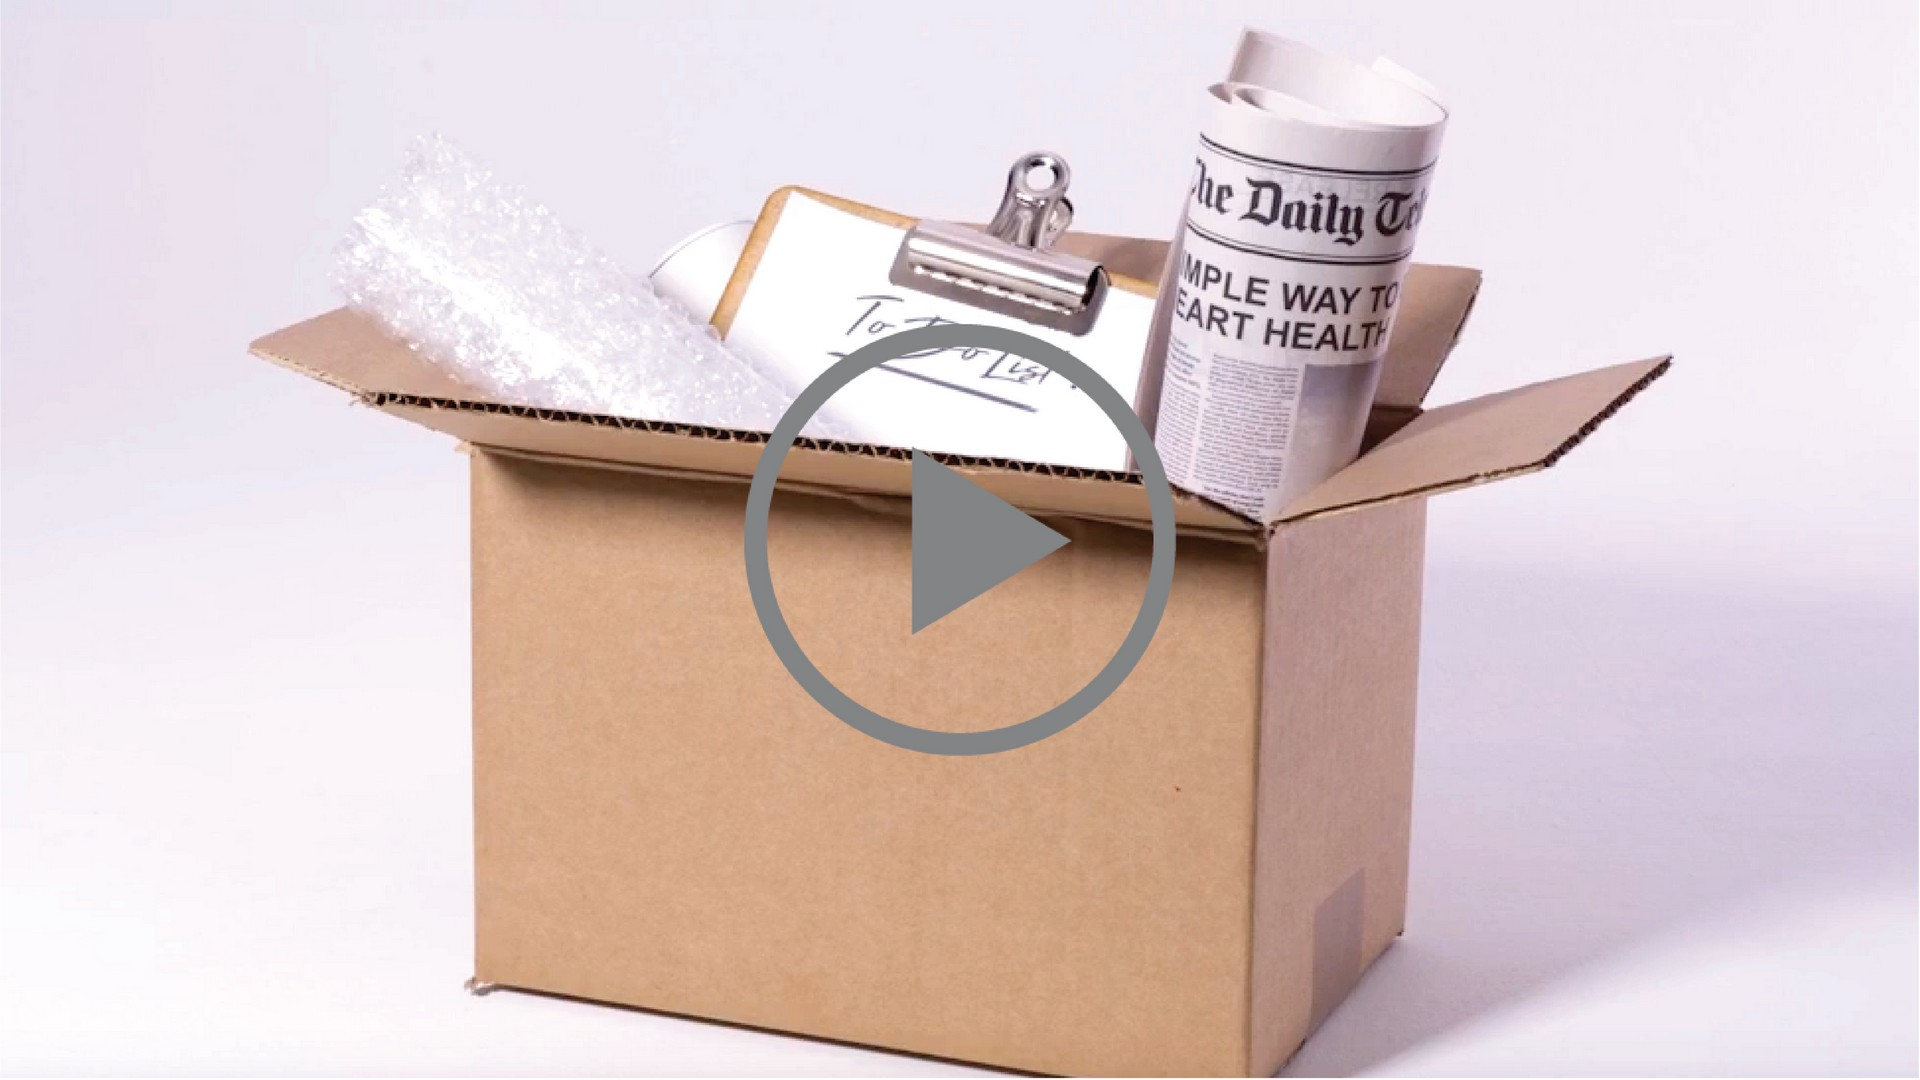 5 SAFETY TIPS TO CONSIDER WHEN USING A MOVING COMPANY